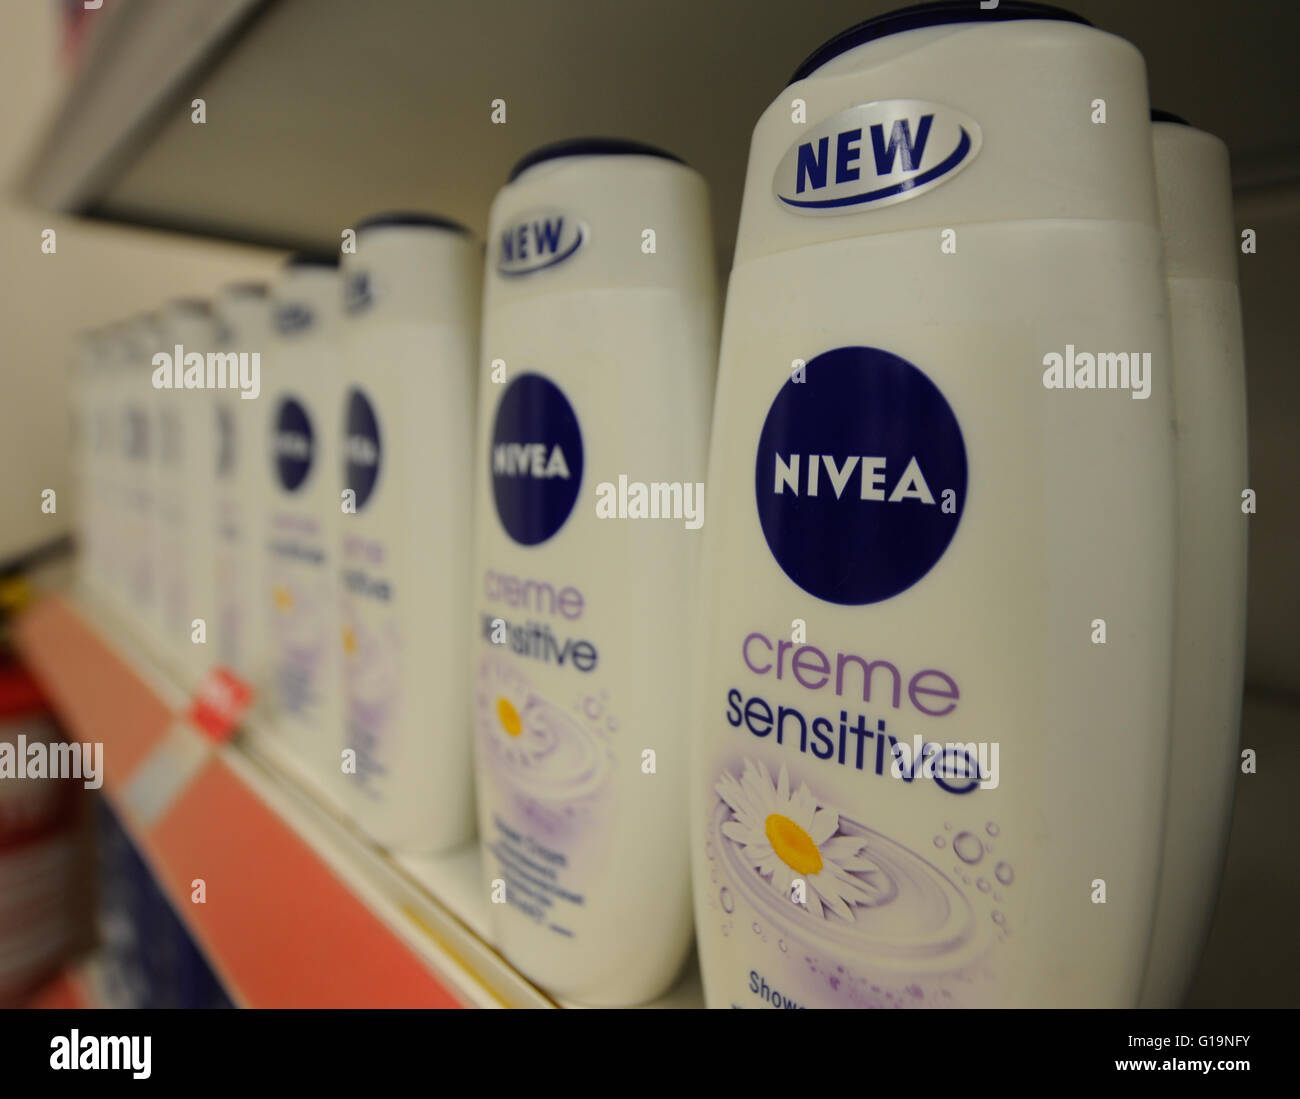 NIVEA shower creme - Stock Image